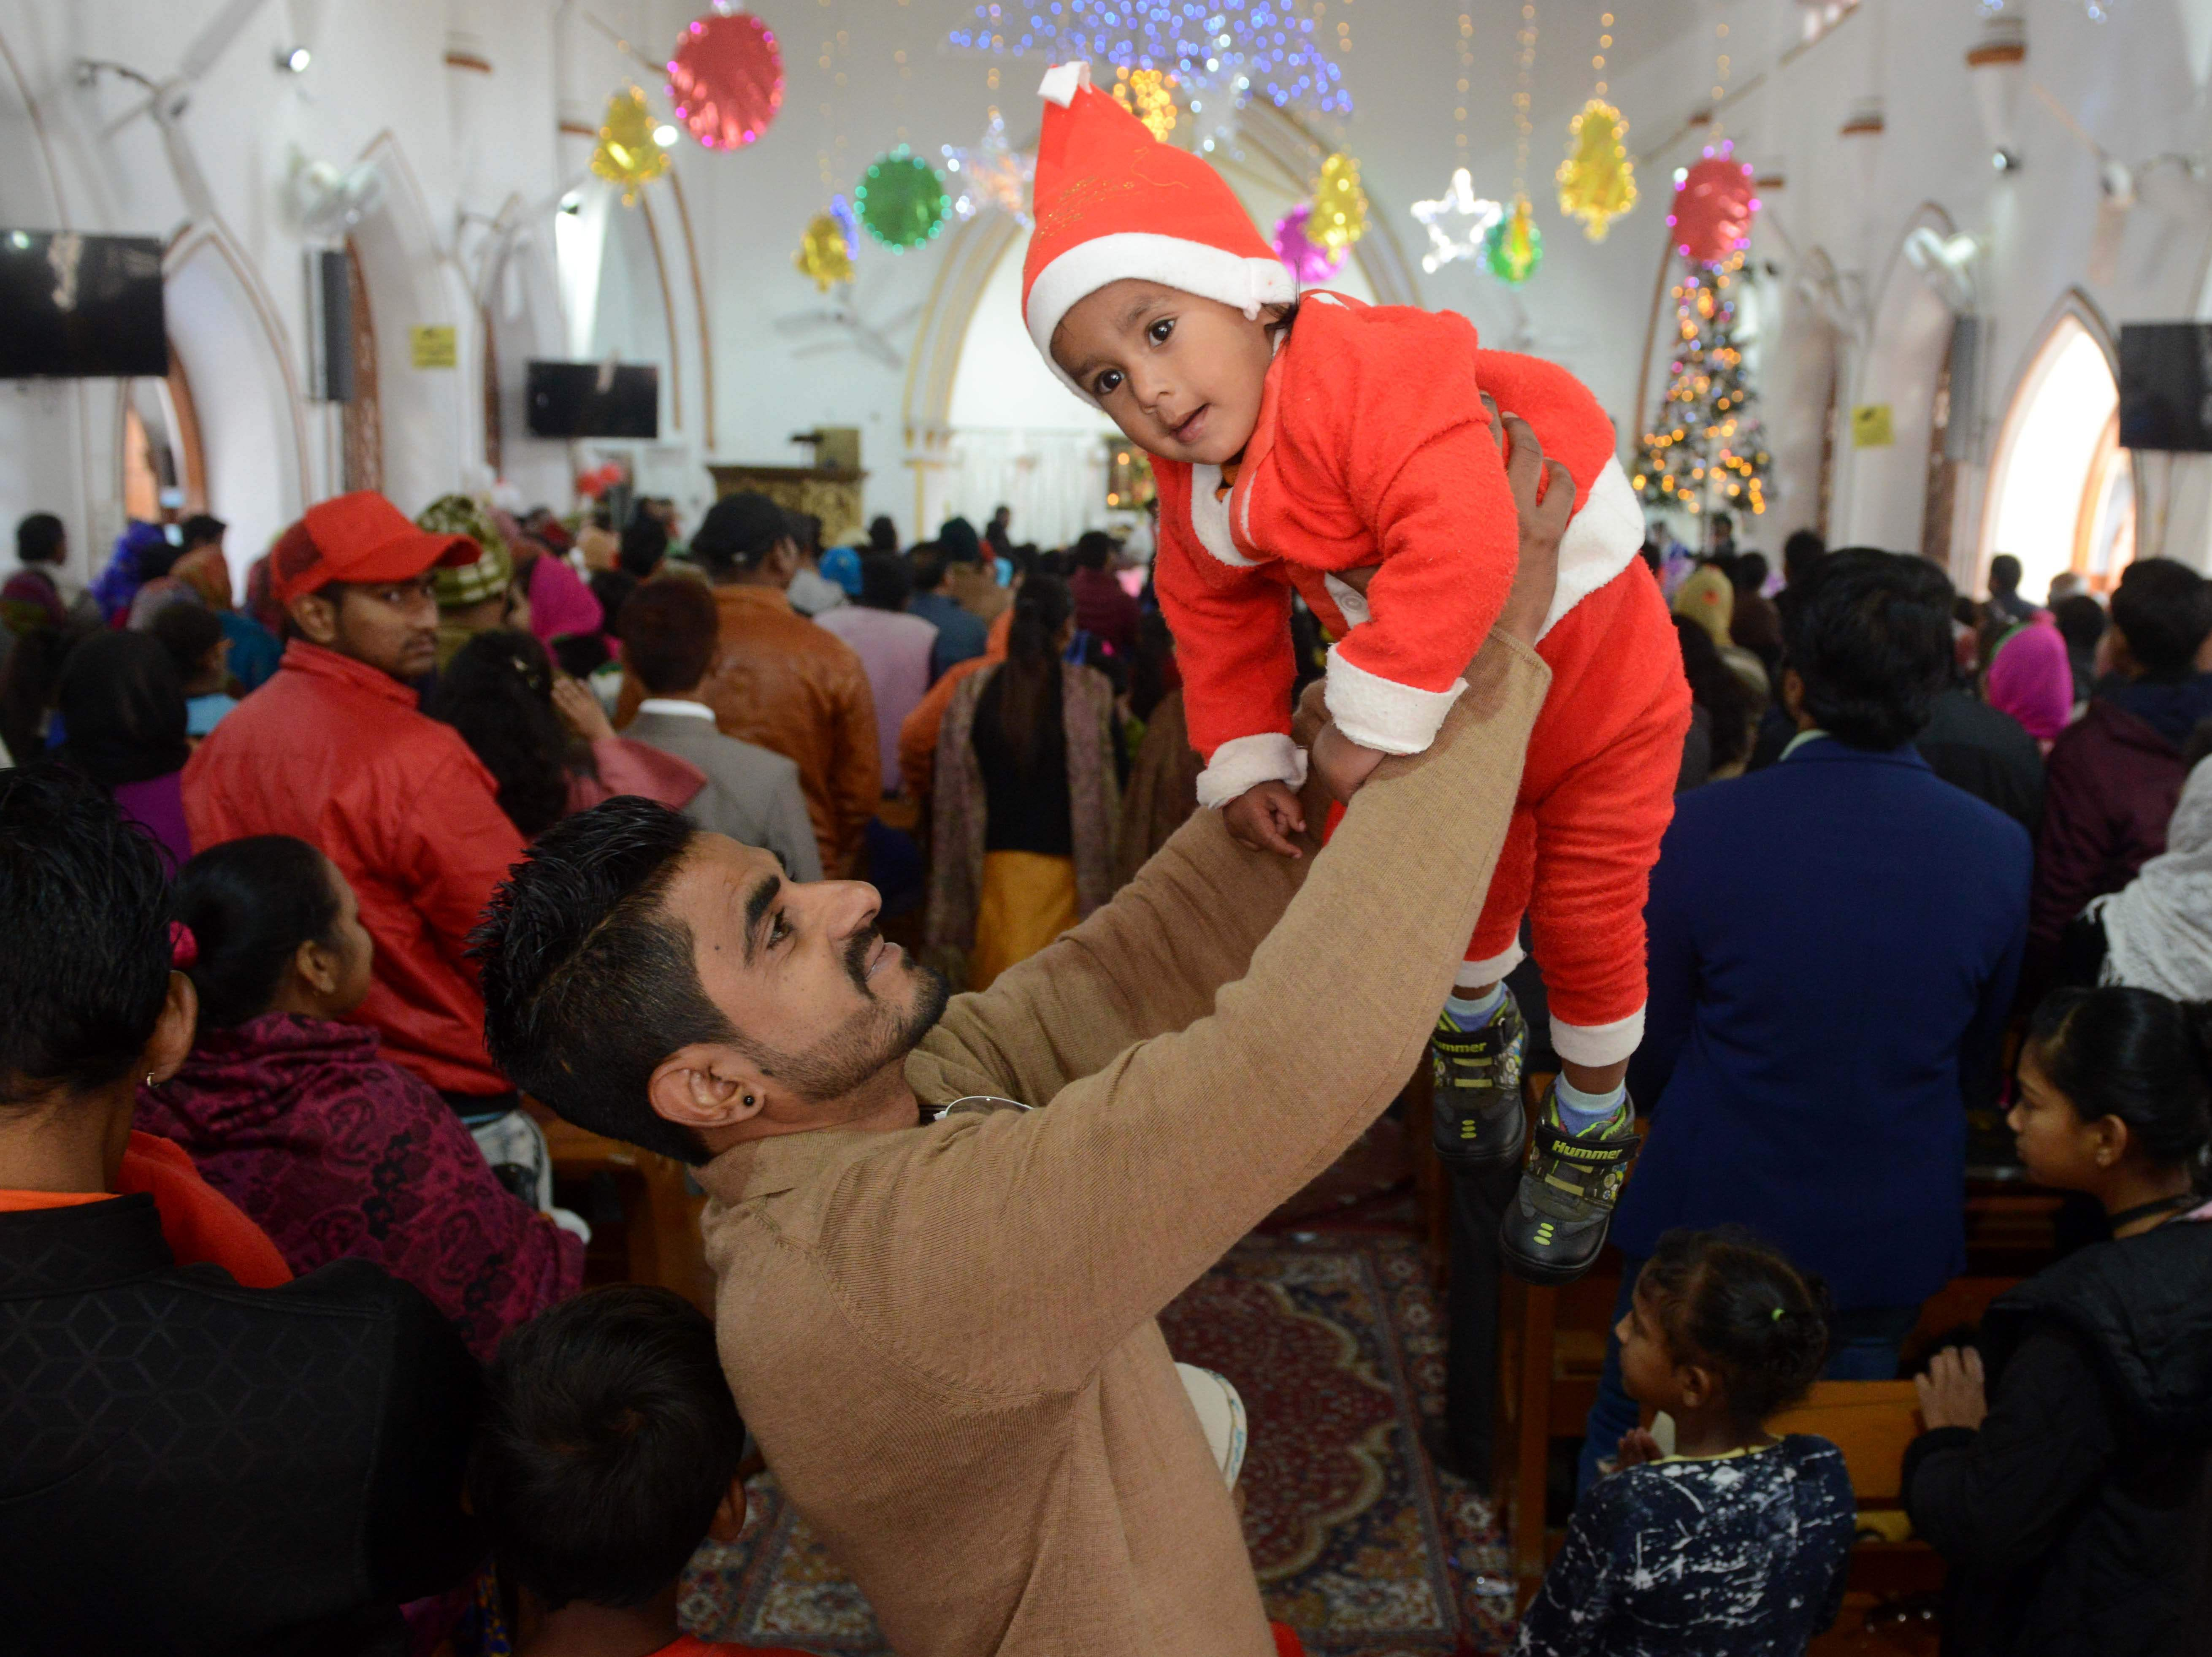 An Indian child dressed as Santa Claus is held up by his father at a service to mark Christmas Day at a church in Amritsar on Dec. 25, 2018. Despite Christians forming a little over two percent of the billion plus population in India, with Hindus comprising the majority, Christmas is celebrated with much fanfare and zeal throughout the country.